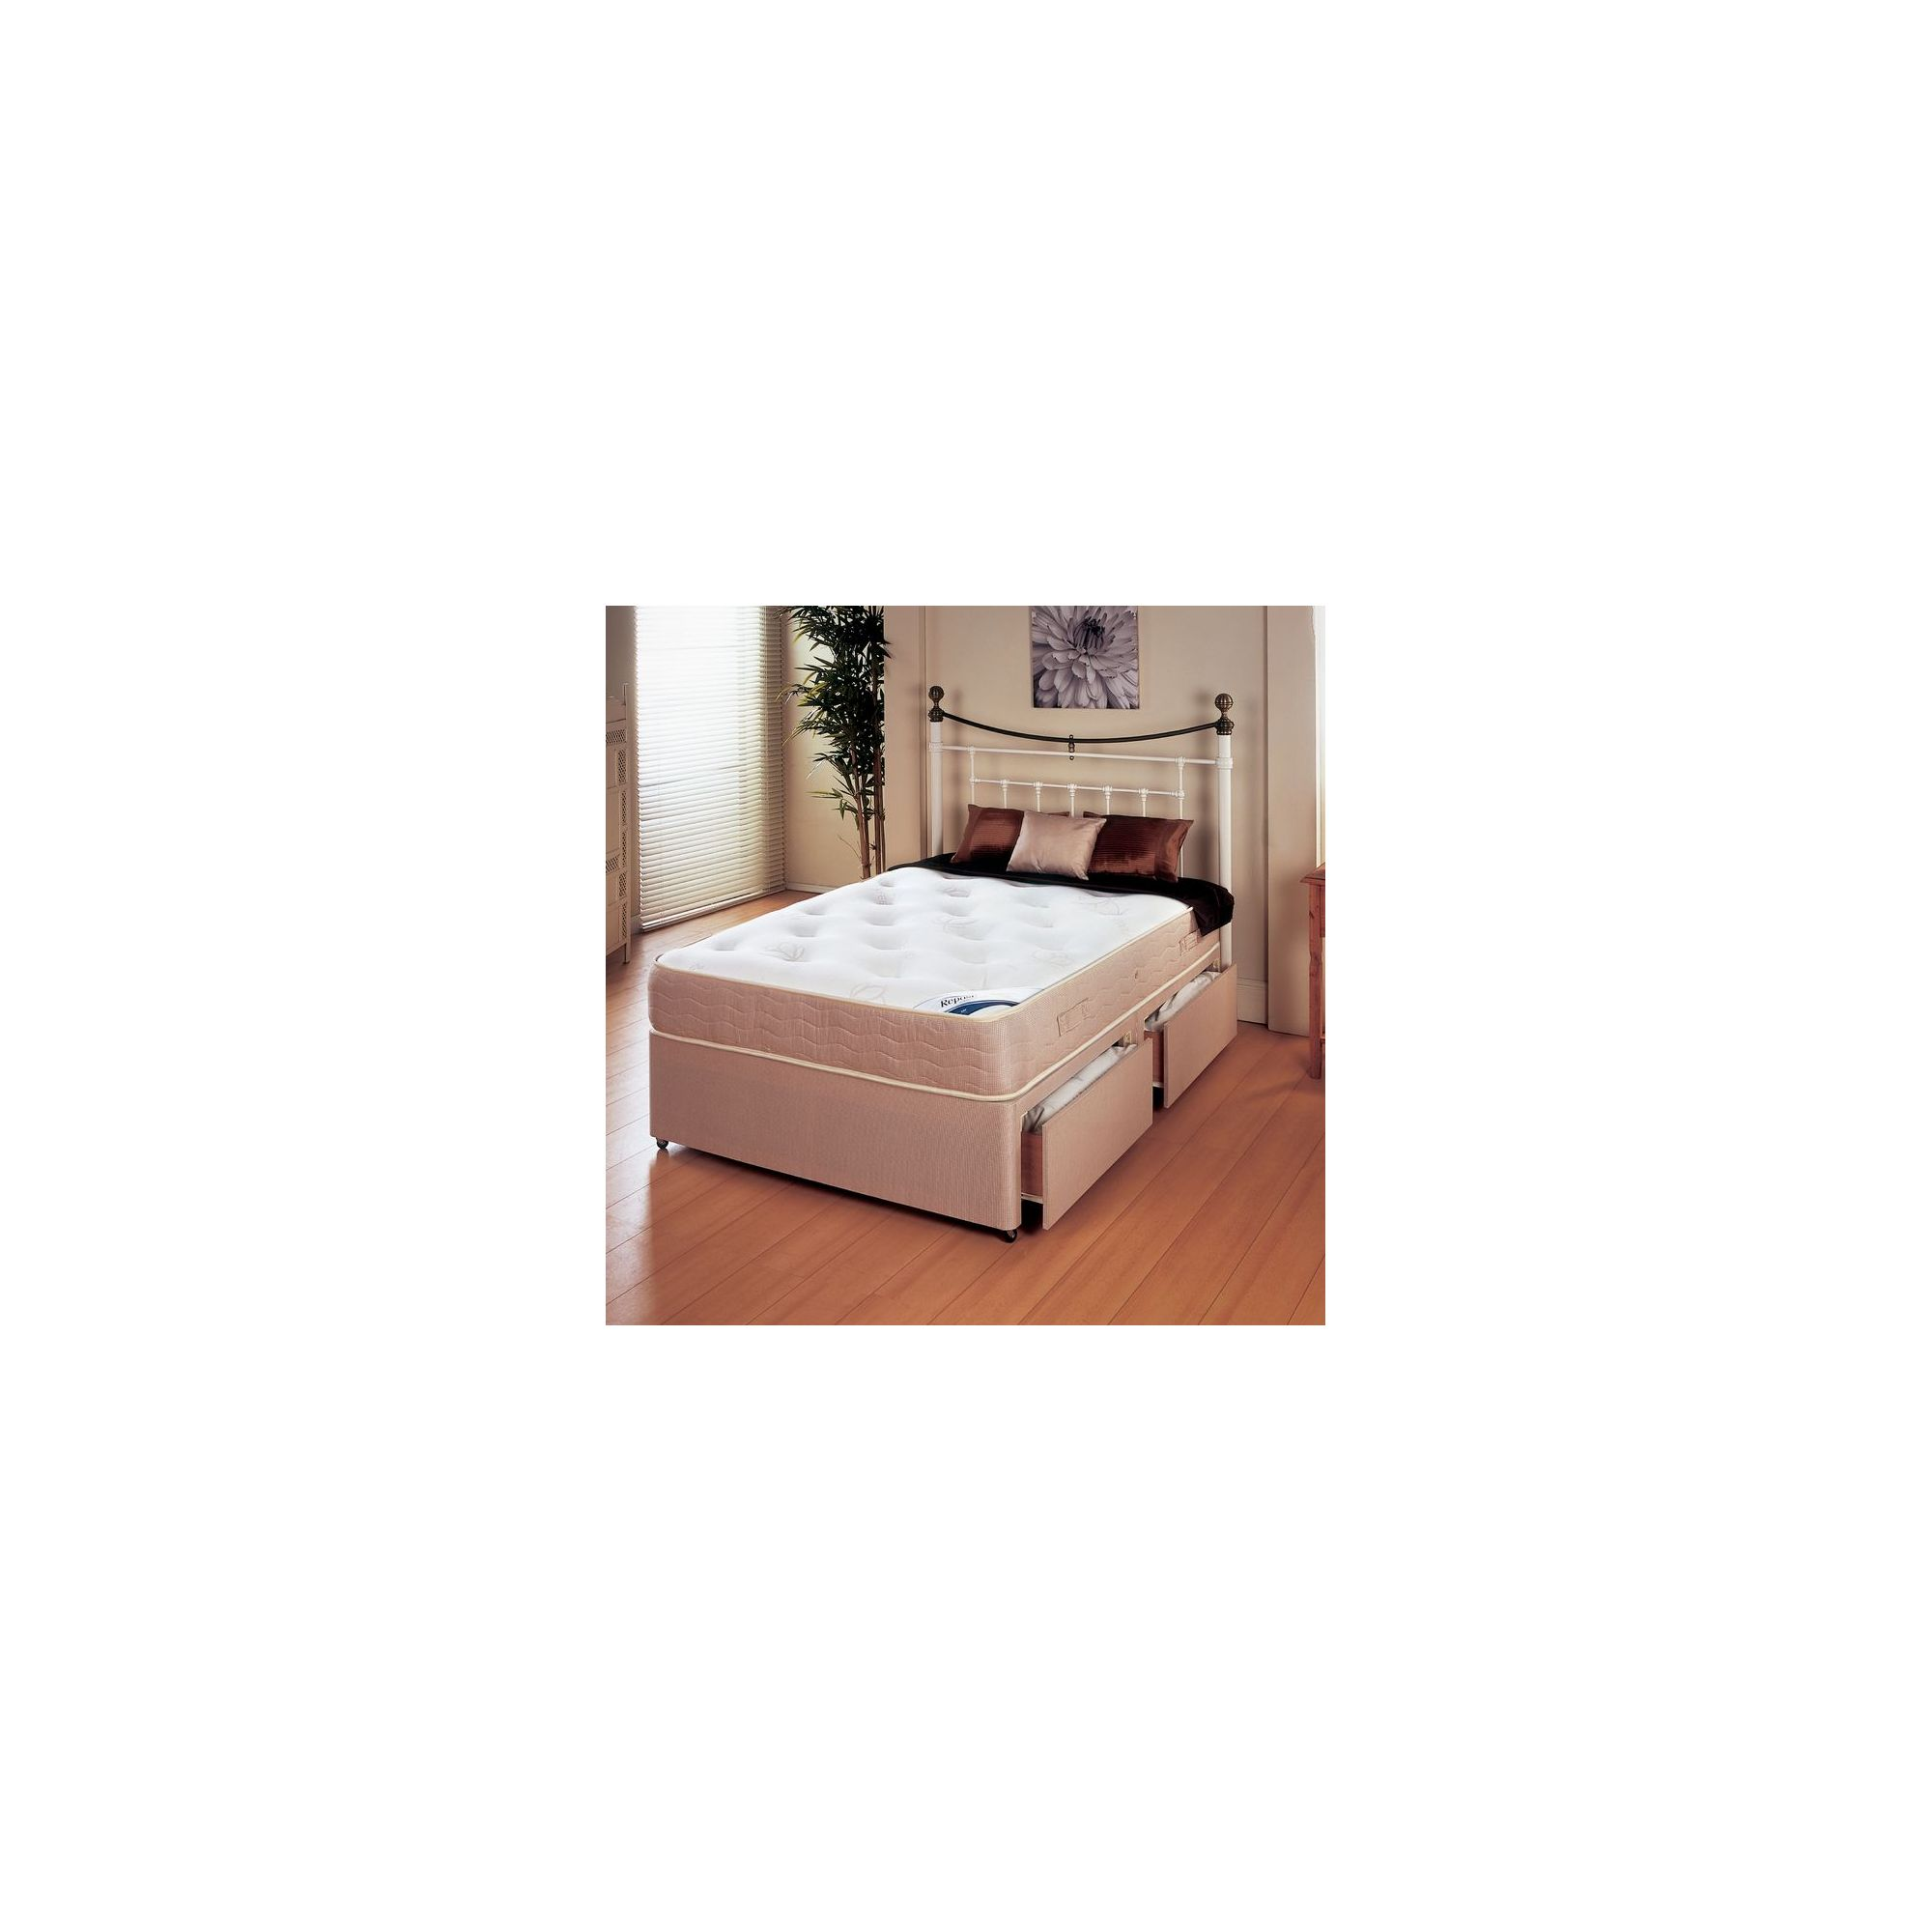 Repose New Princess 1000 Platform Set - Small Single/Single / 2 Drawer at Tesco Direct